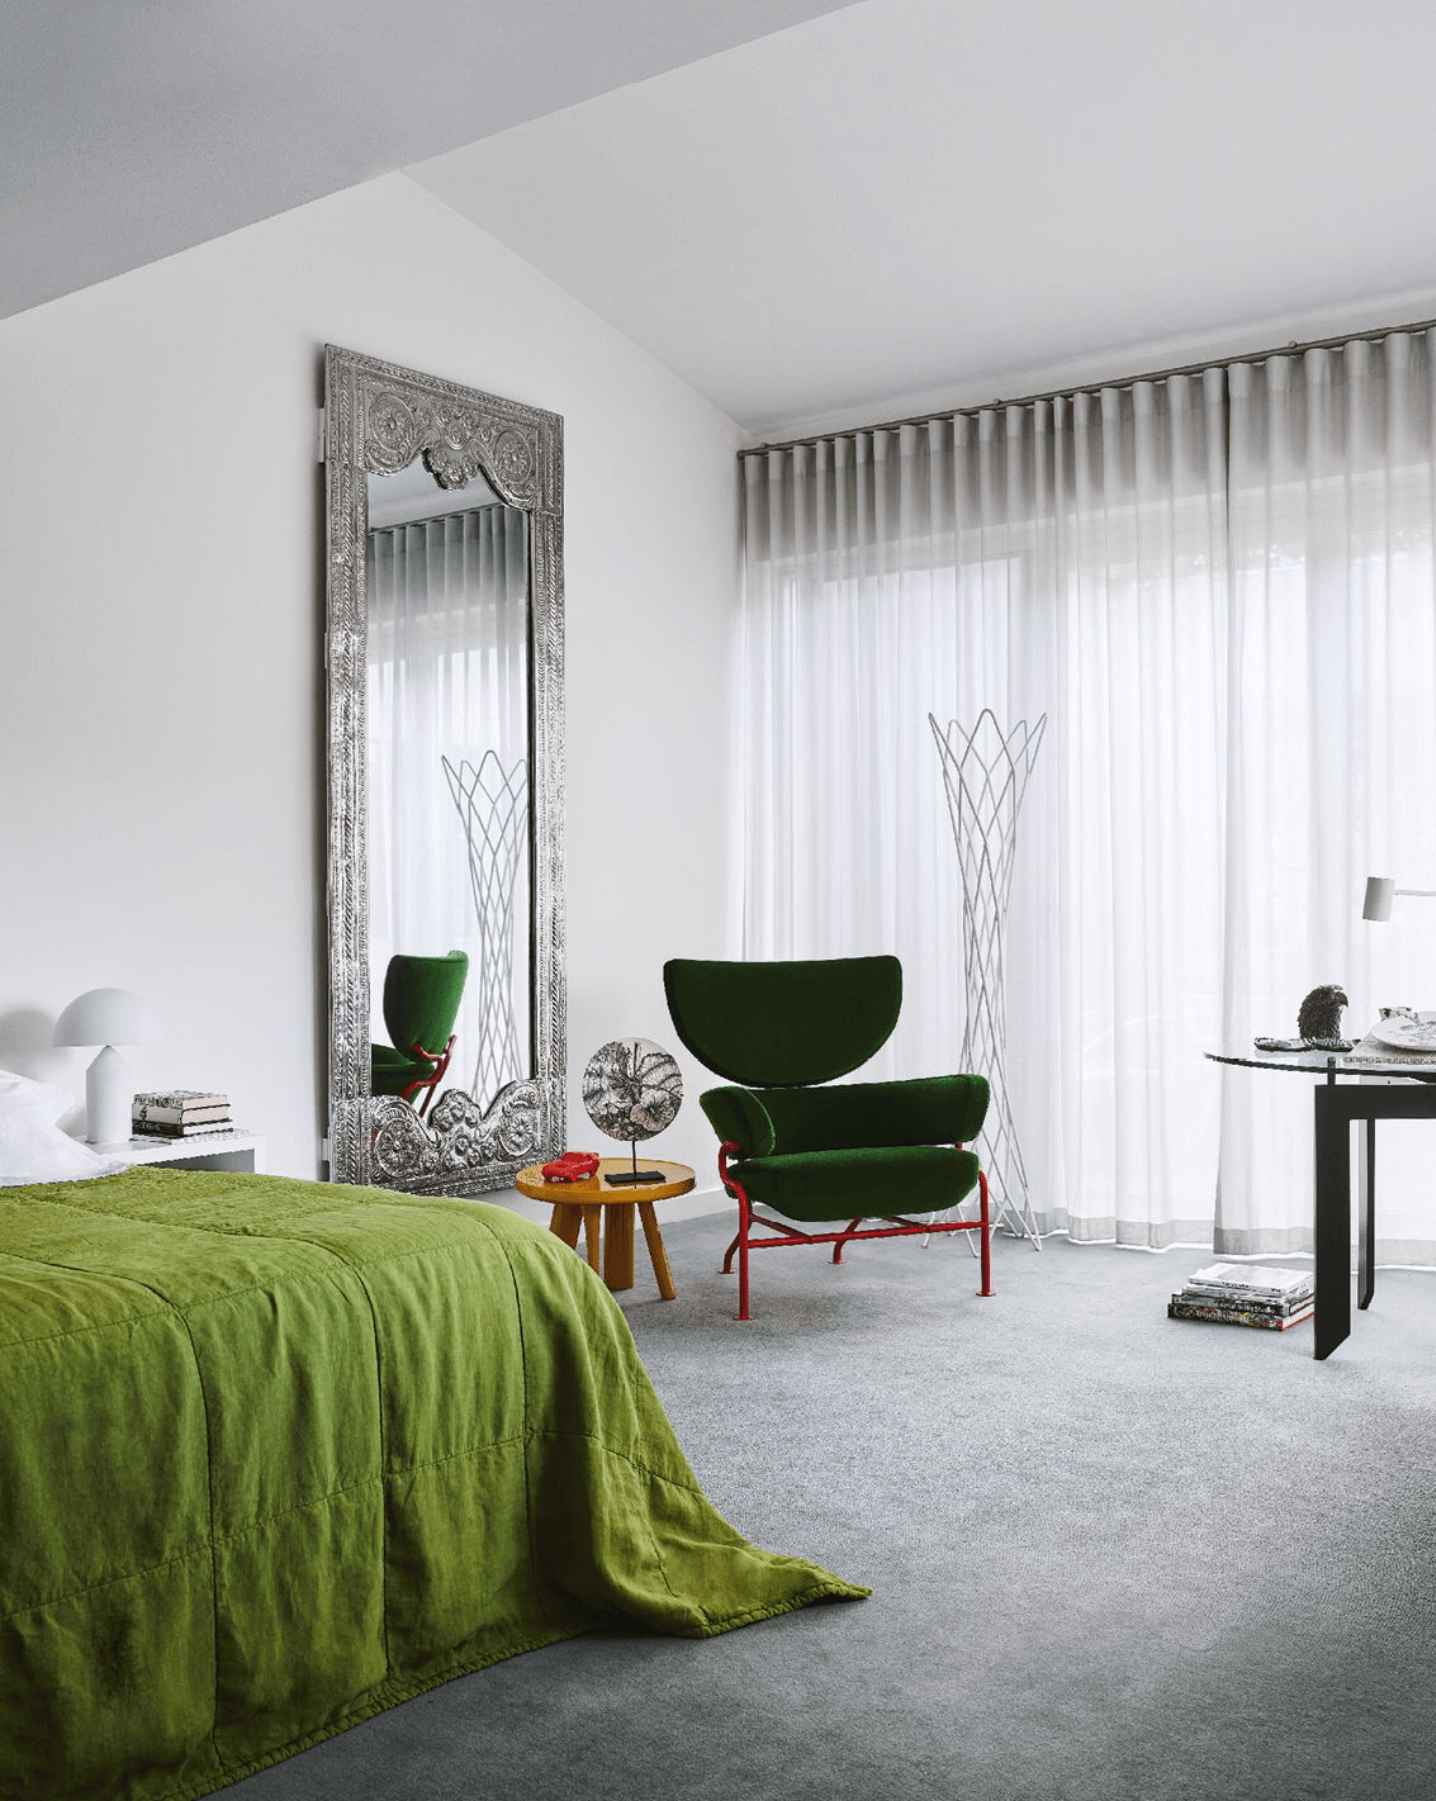 Eclectic Bedroom, White Walls, Green color accents, 836 Tre Pezzi Armchair